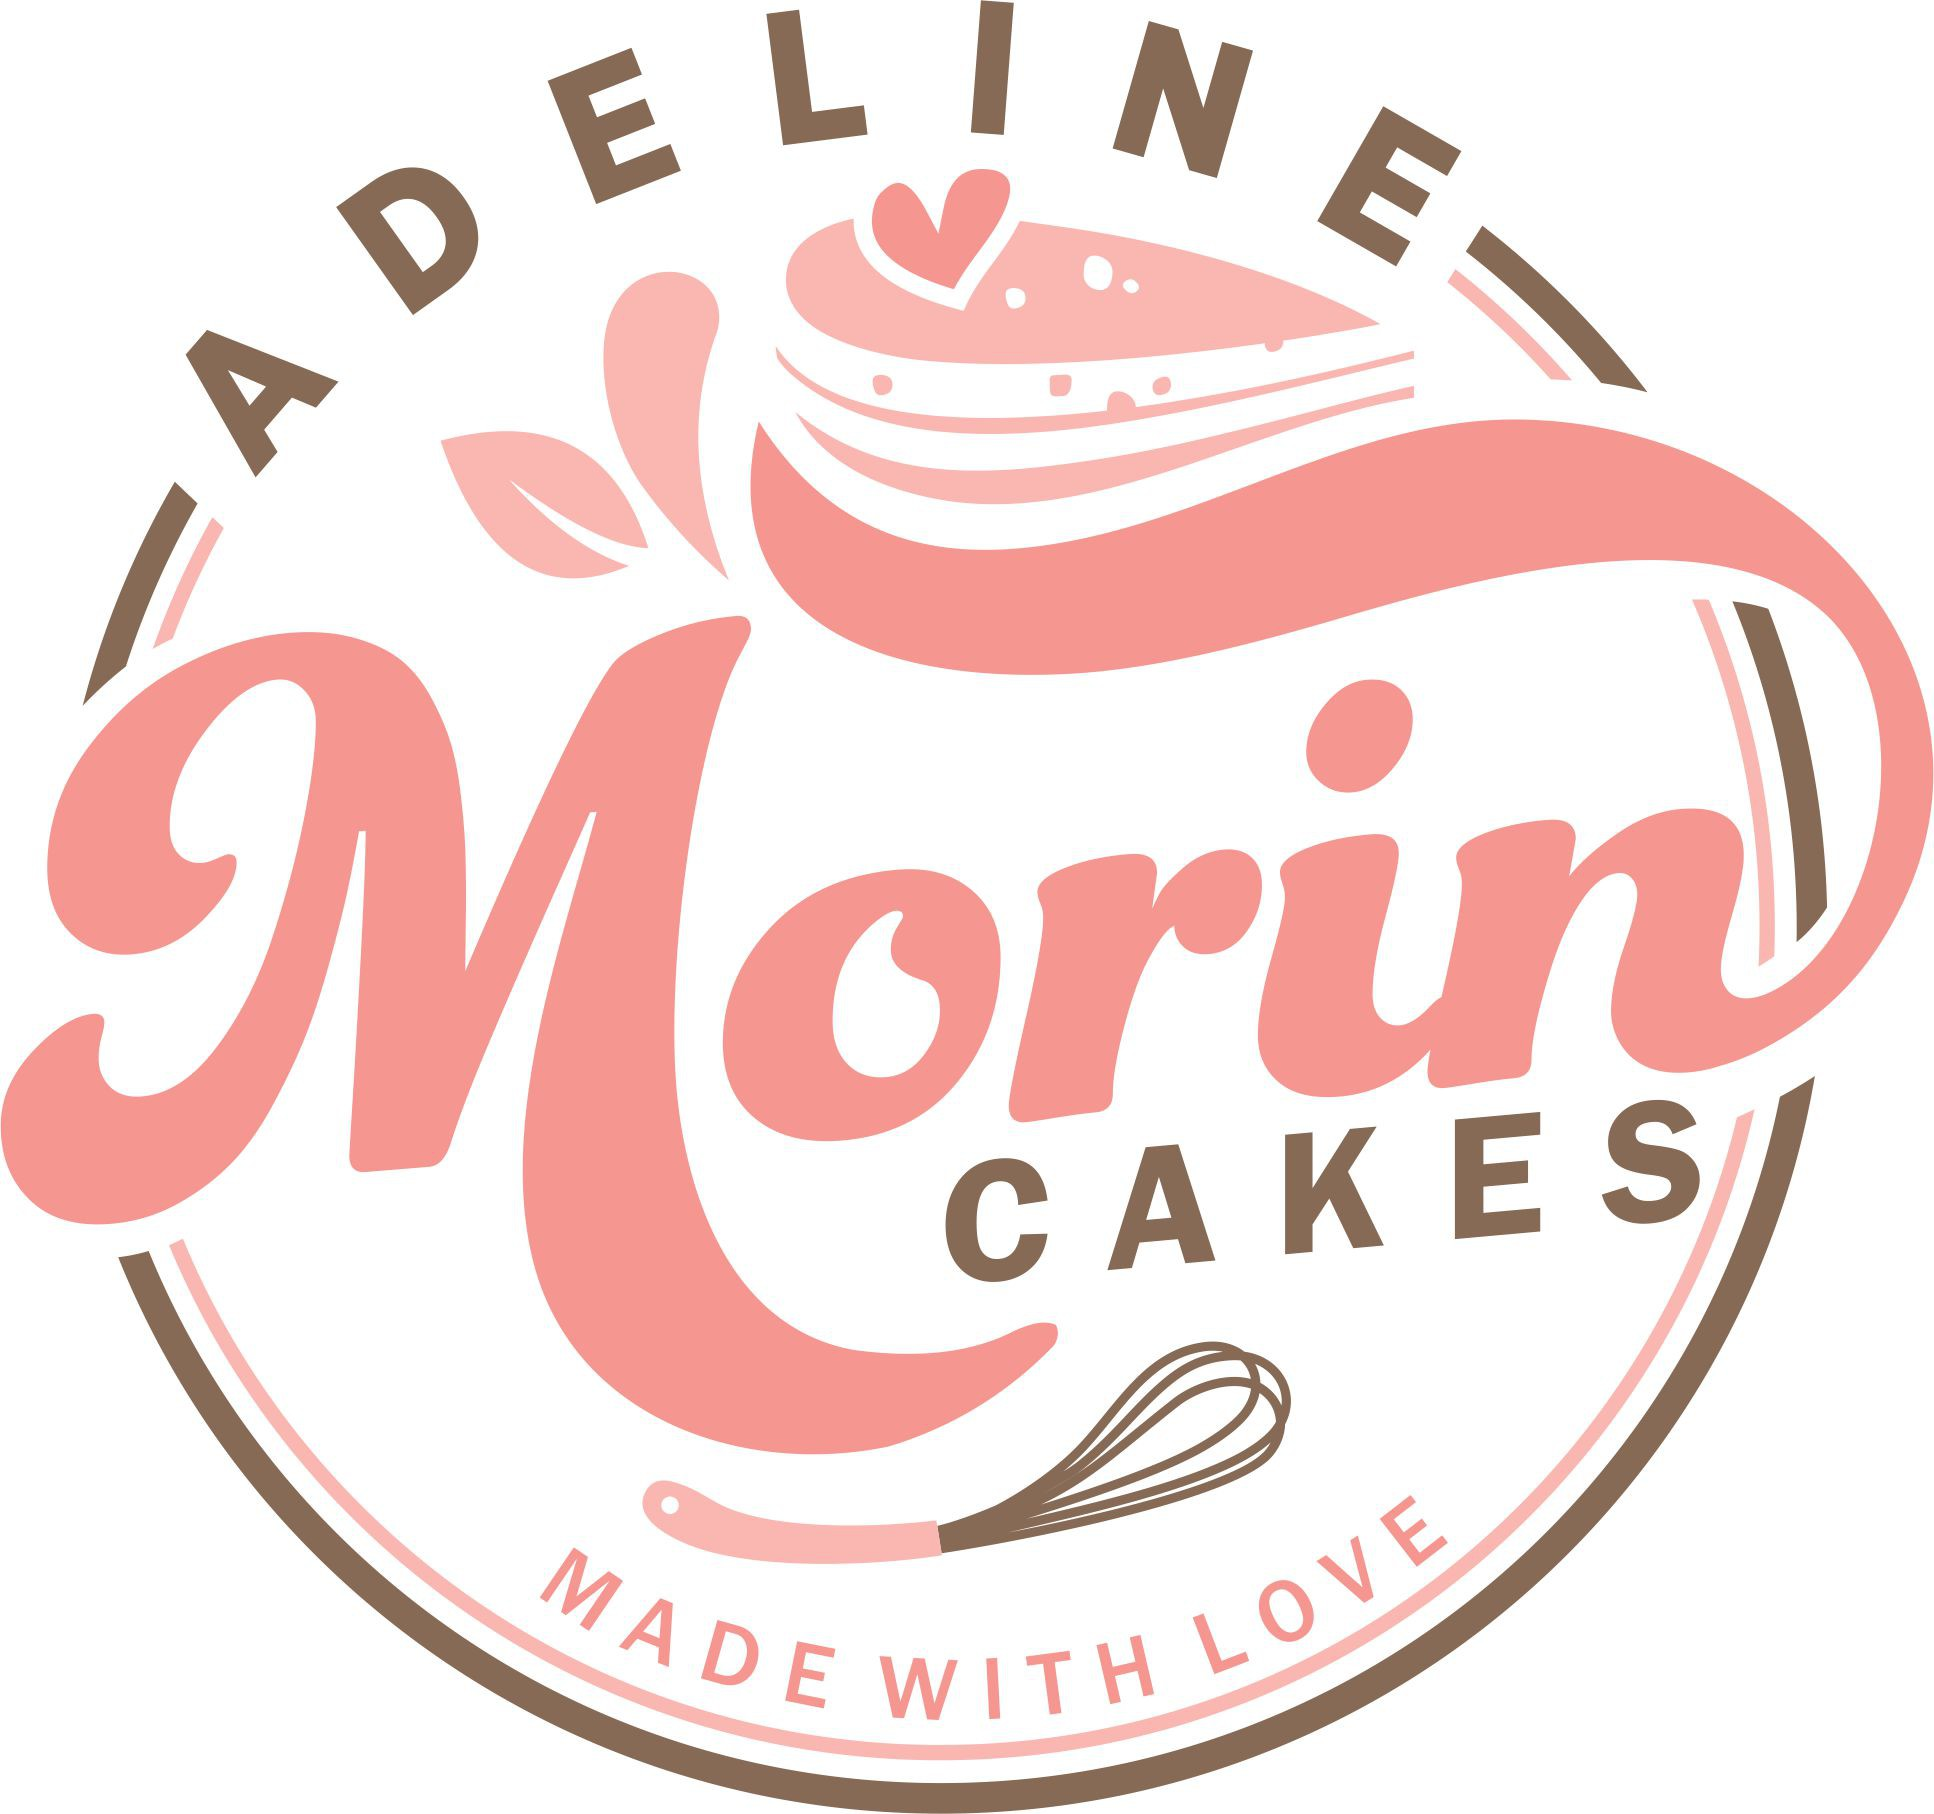 Great Logo for Great Cakes